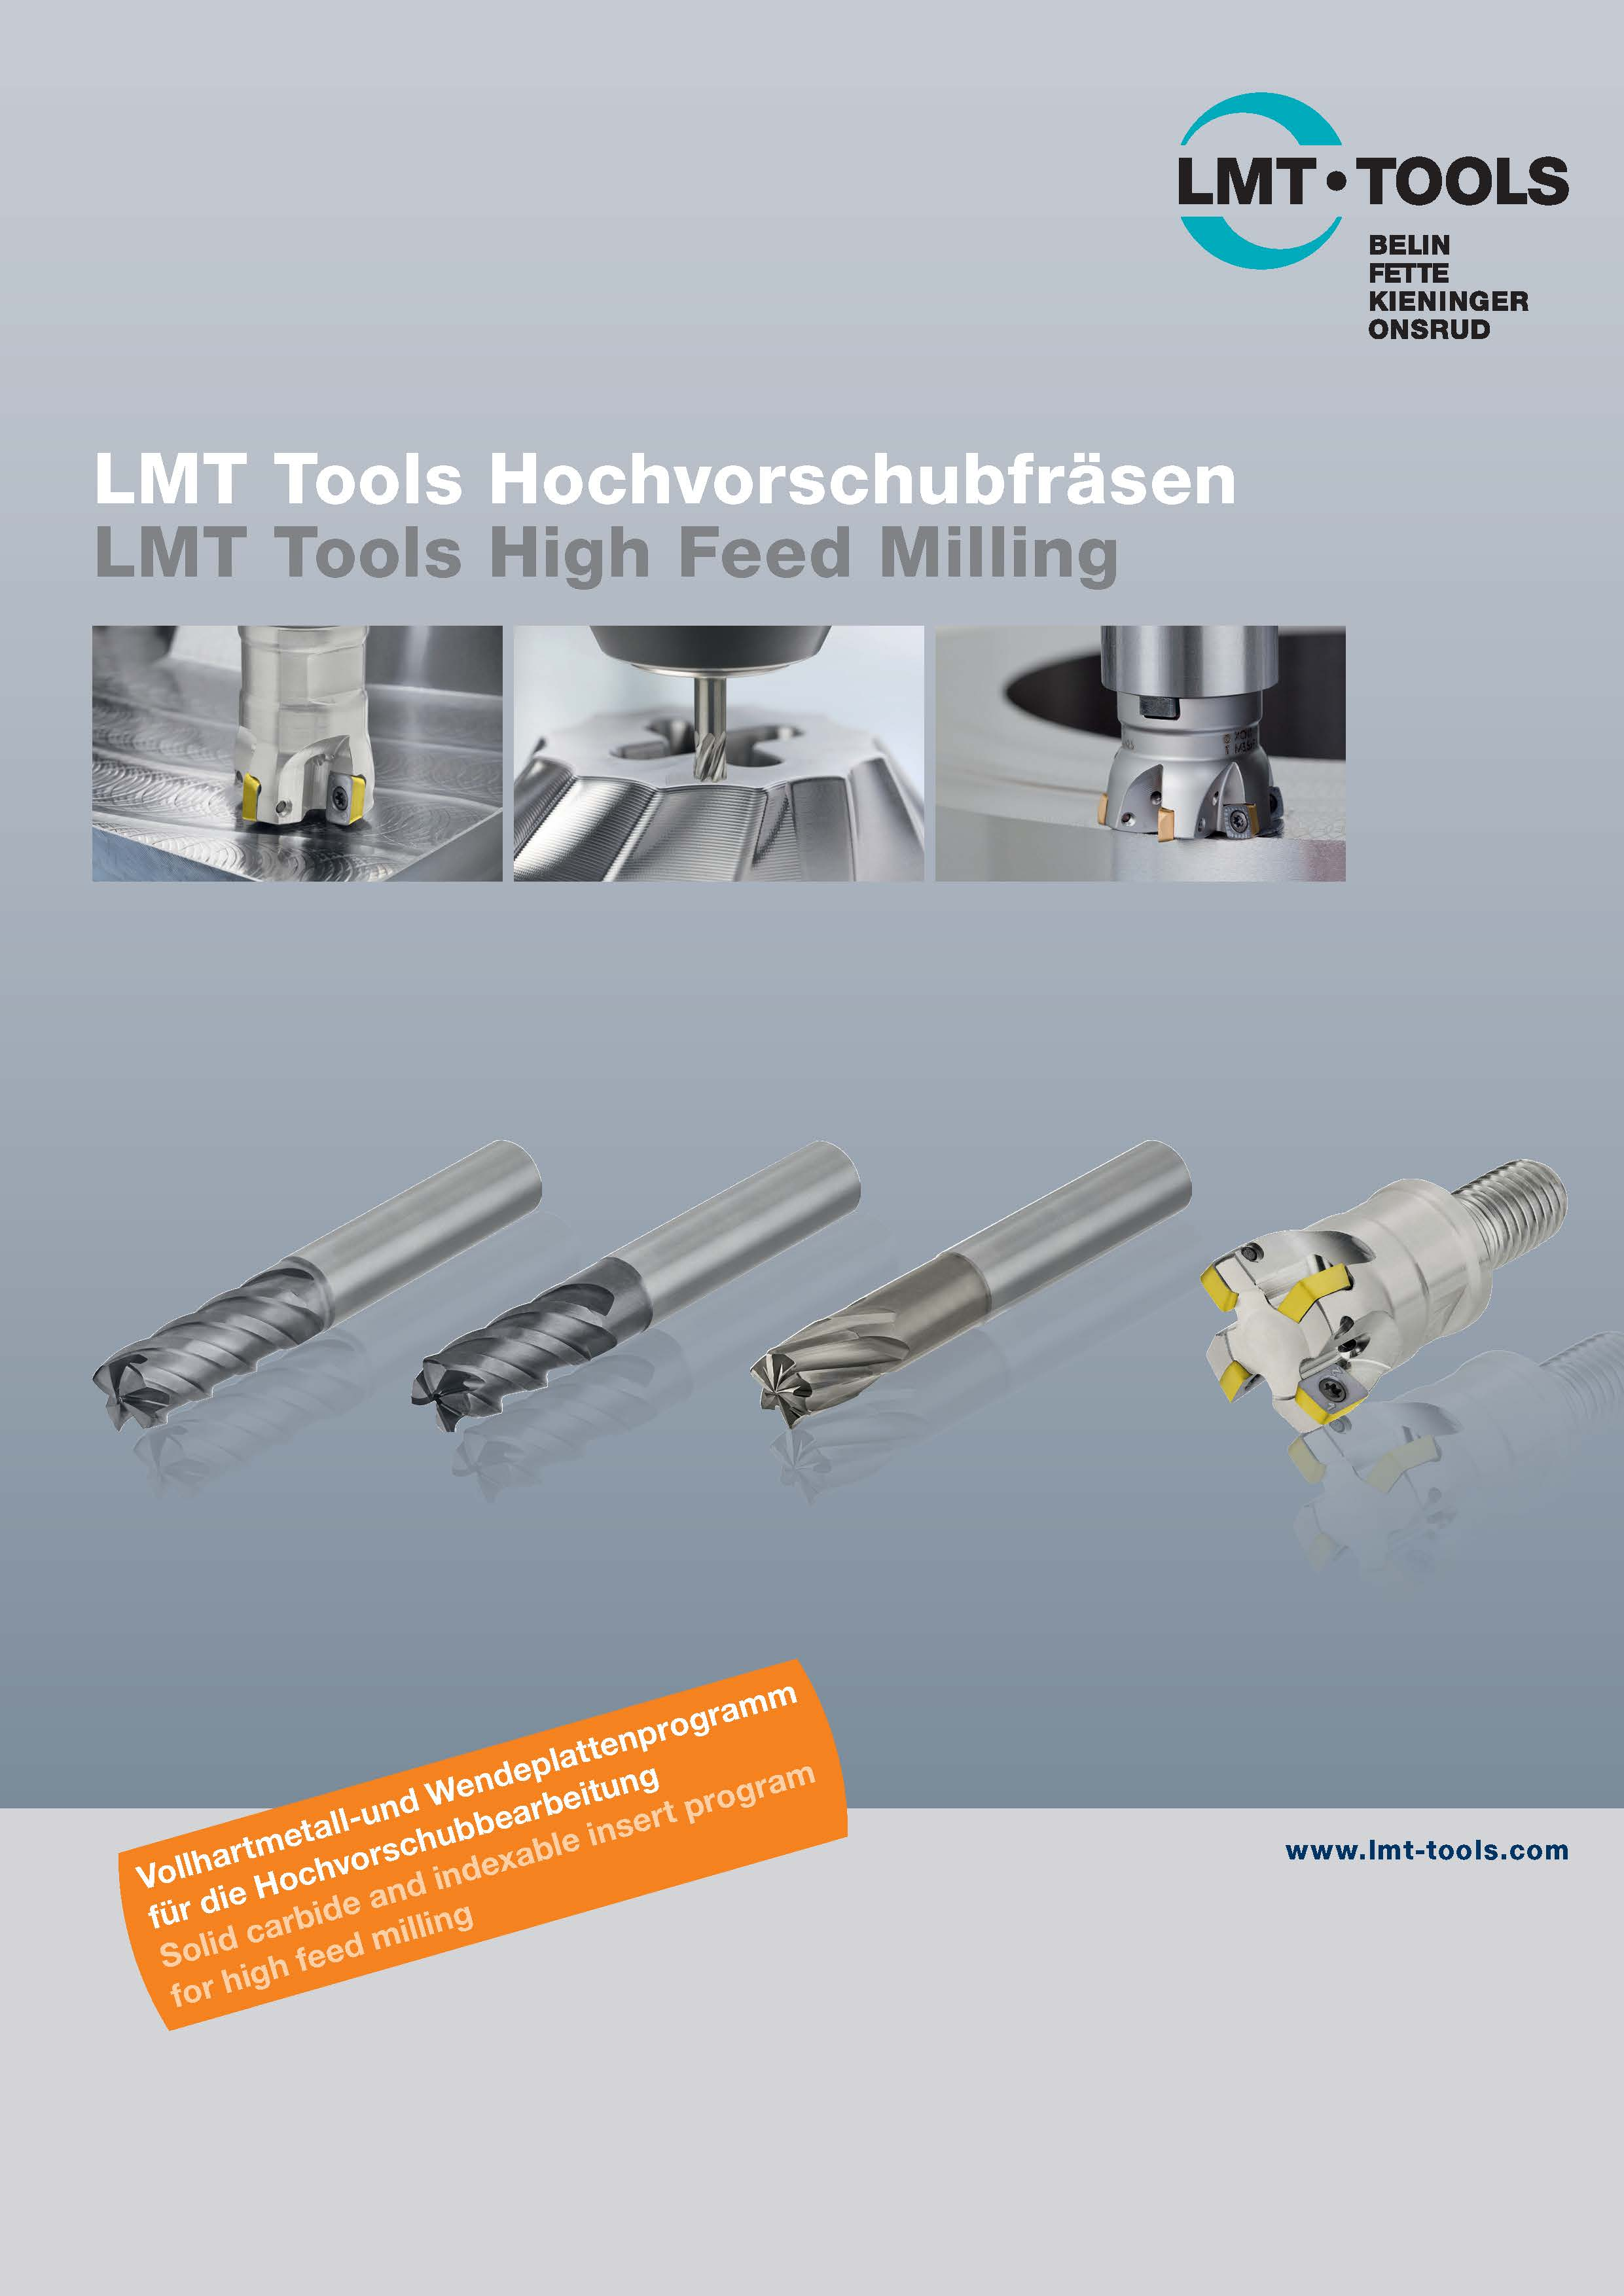 LMT Tools High Feed Milling